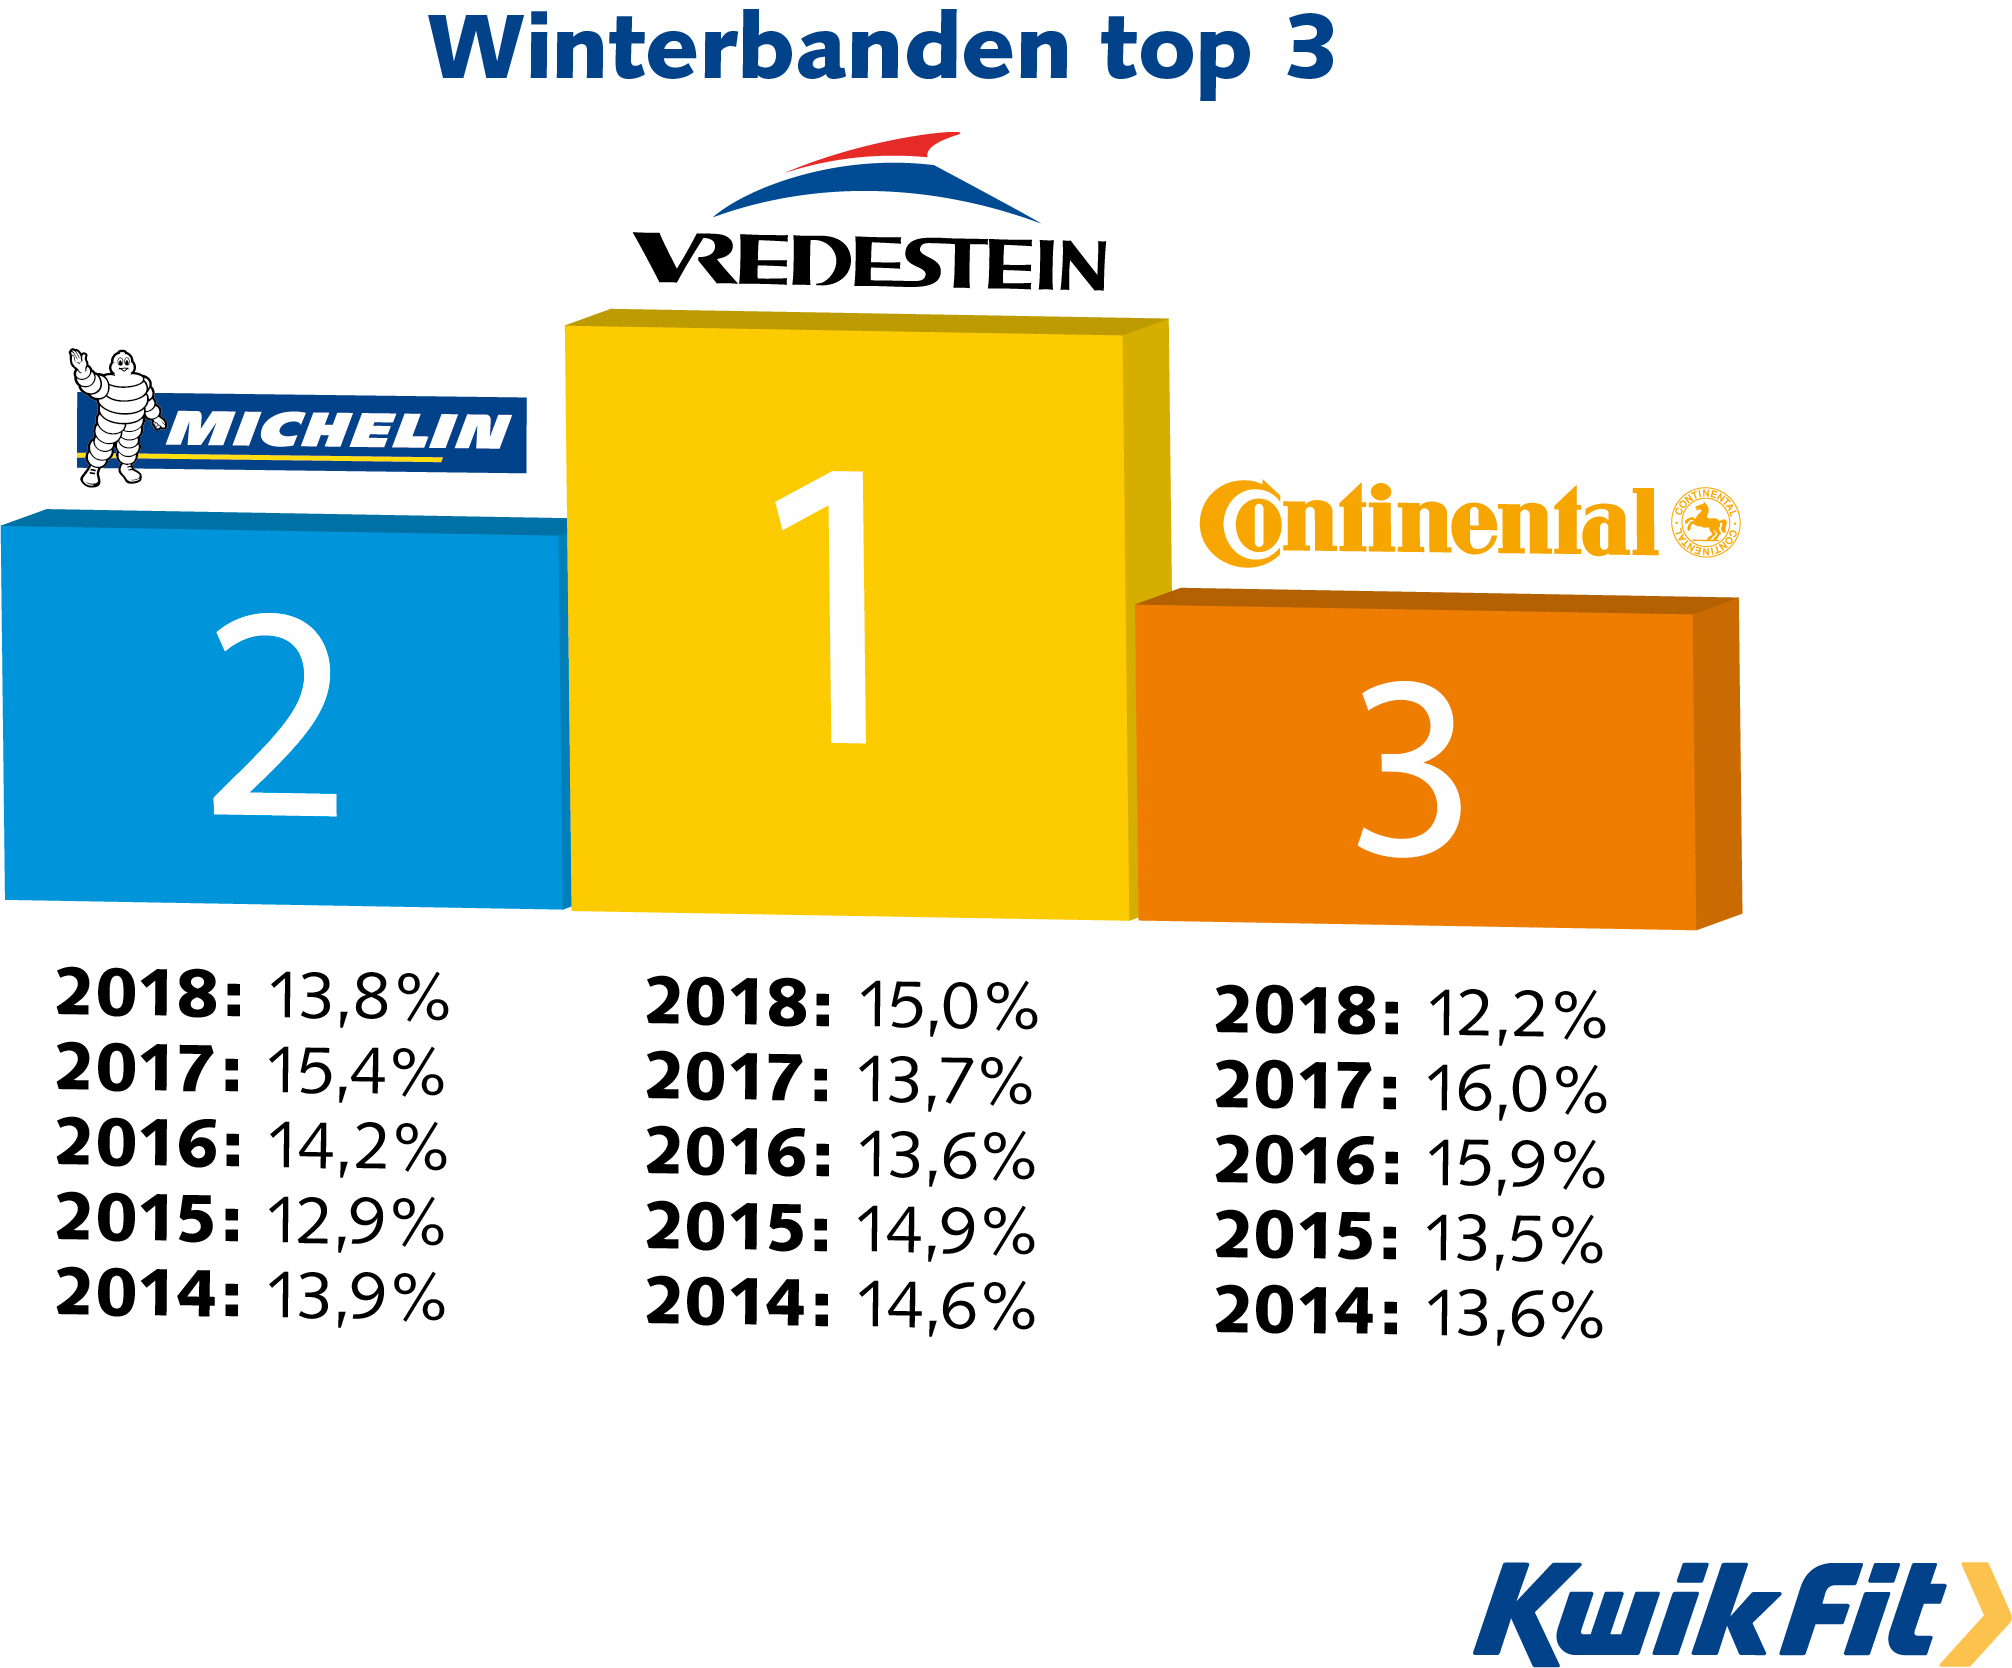 Winterbanden top 3 voorjaar 2018